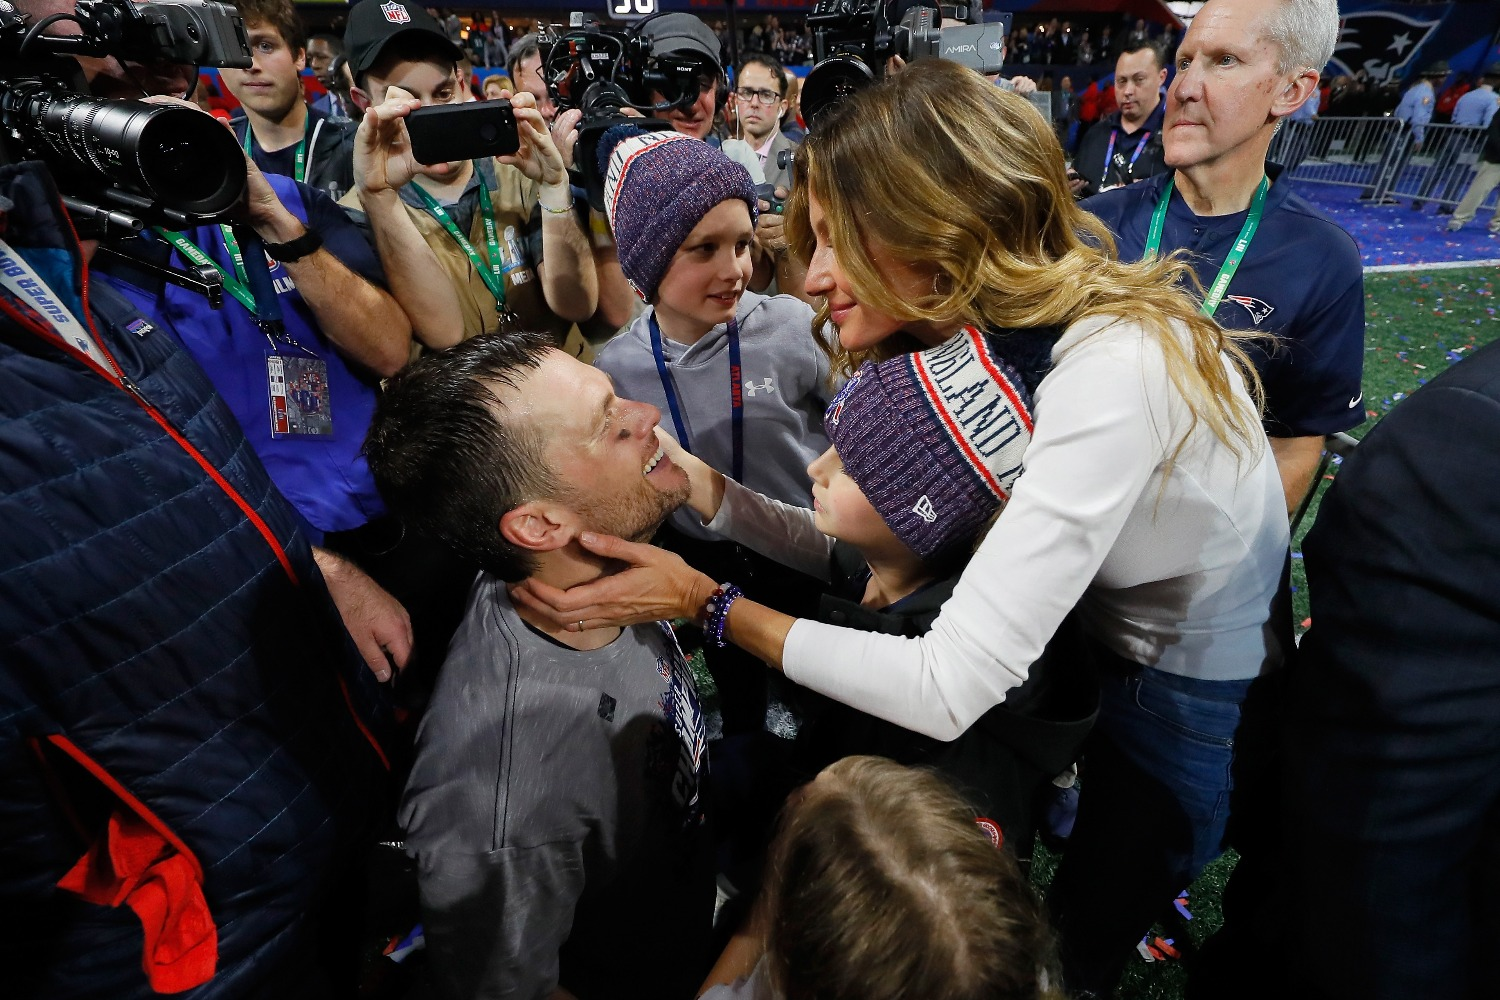 Tom Brady's wife, Gisele Bündchen, played a major role in his decision to leave the Patriots this offseason.